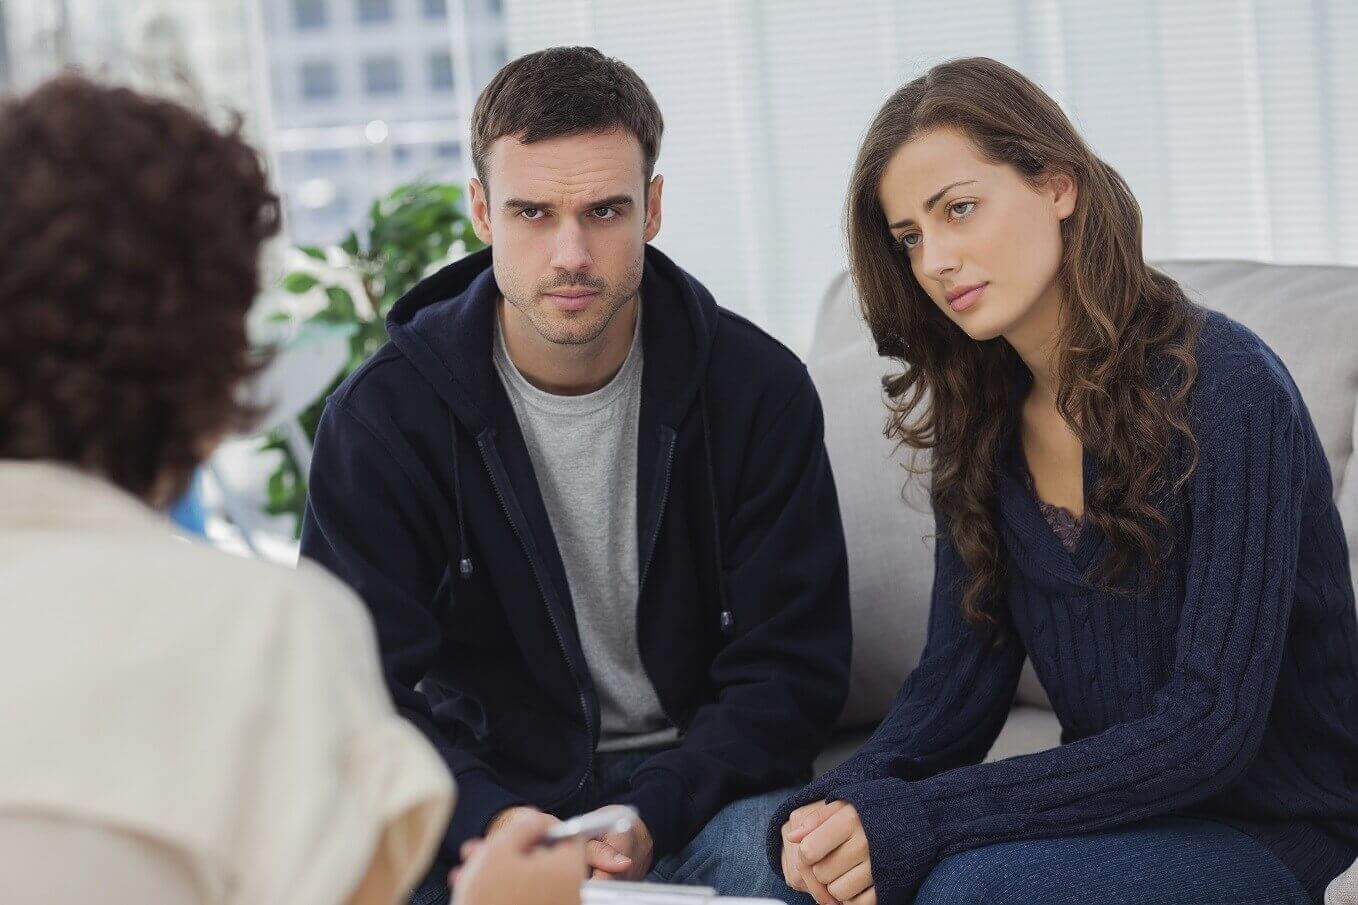 divorce mediator orange county How to choose a divorce mediator? how to choose divorce mediator